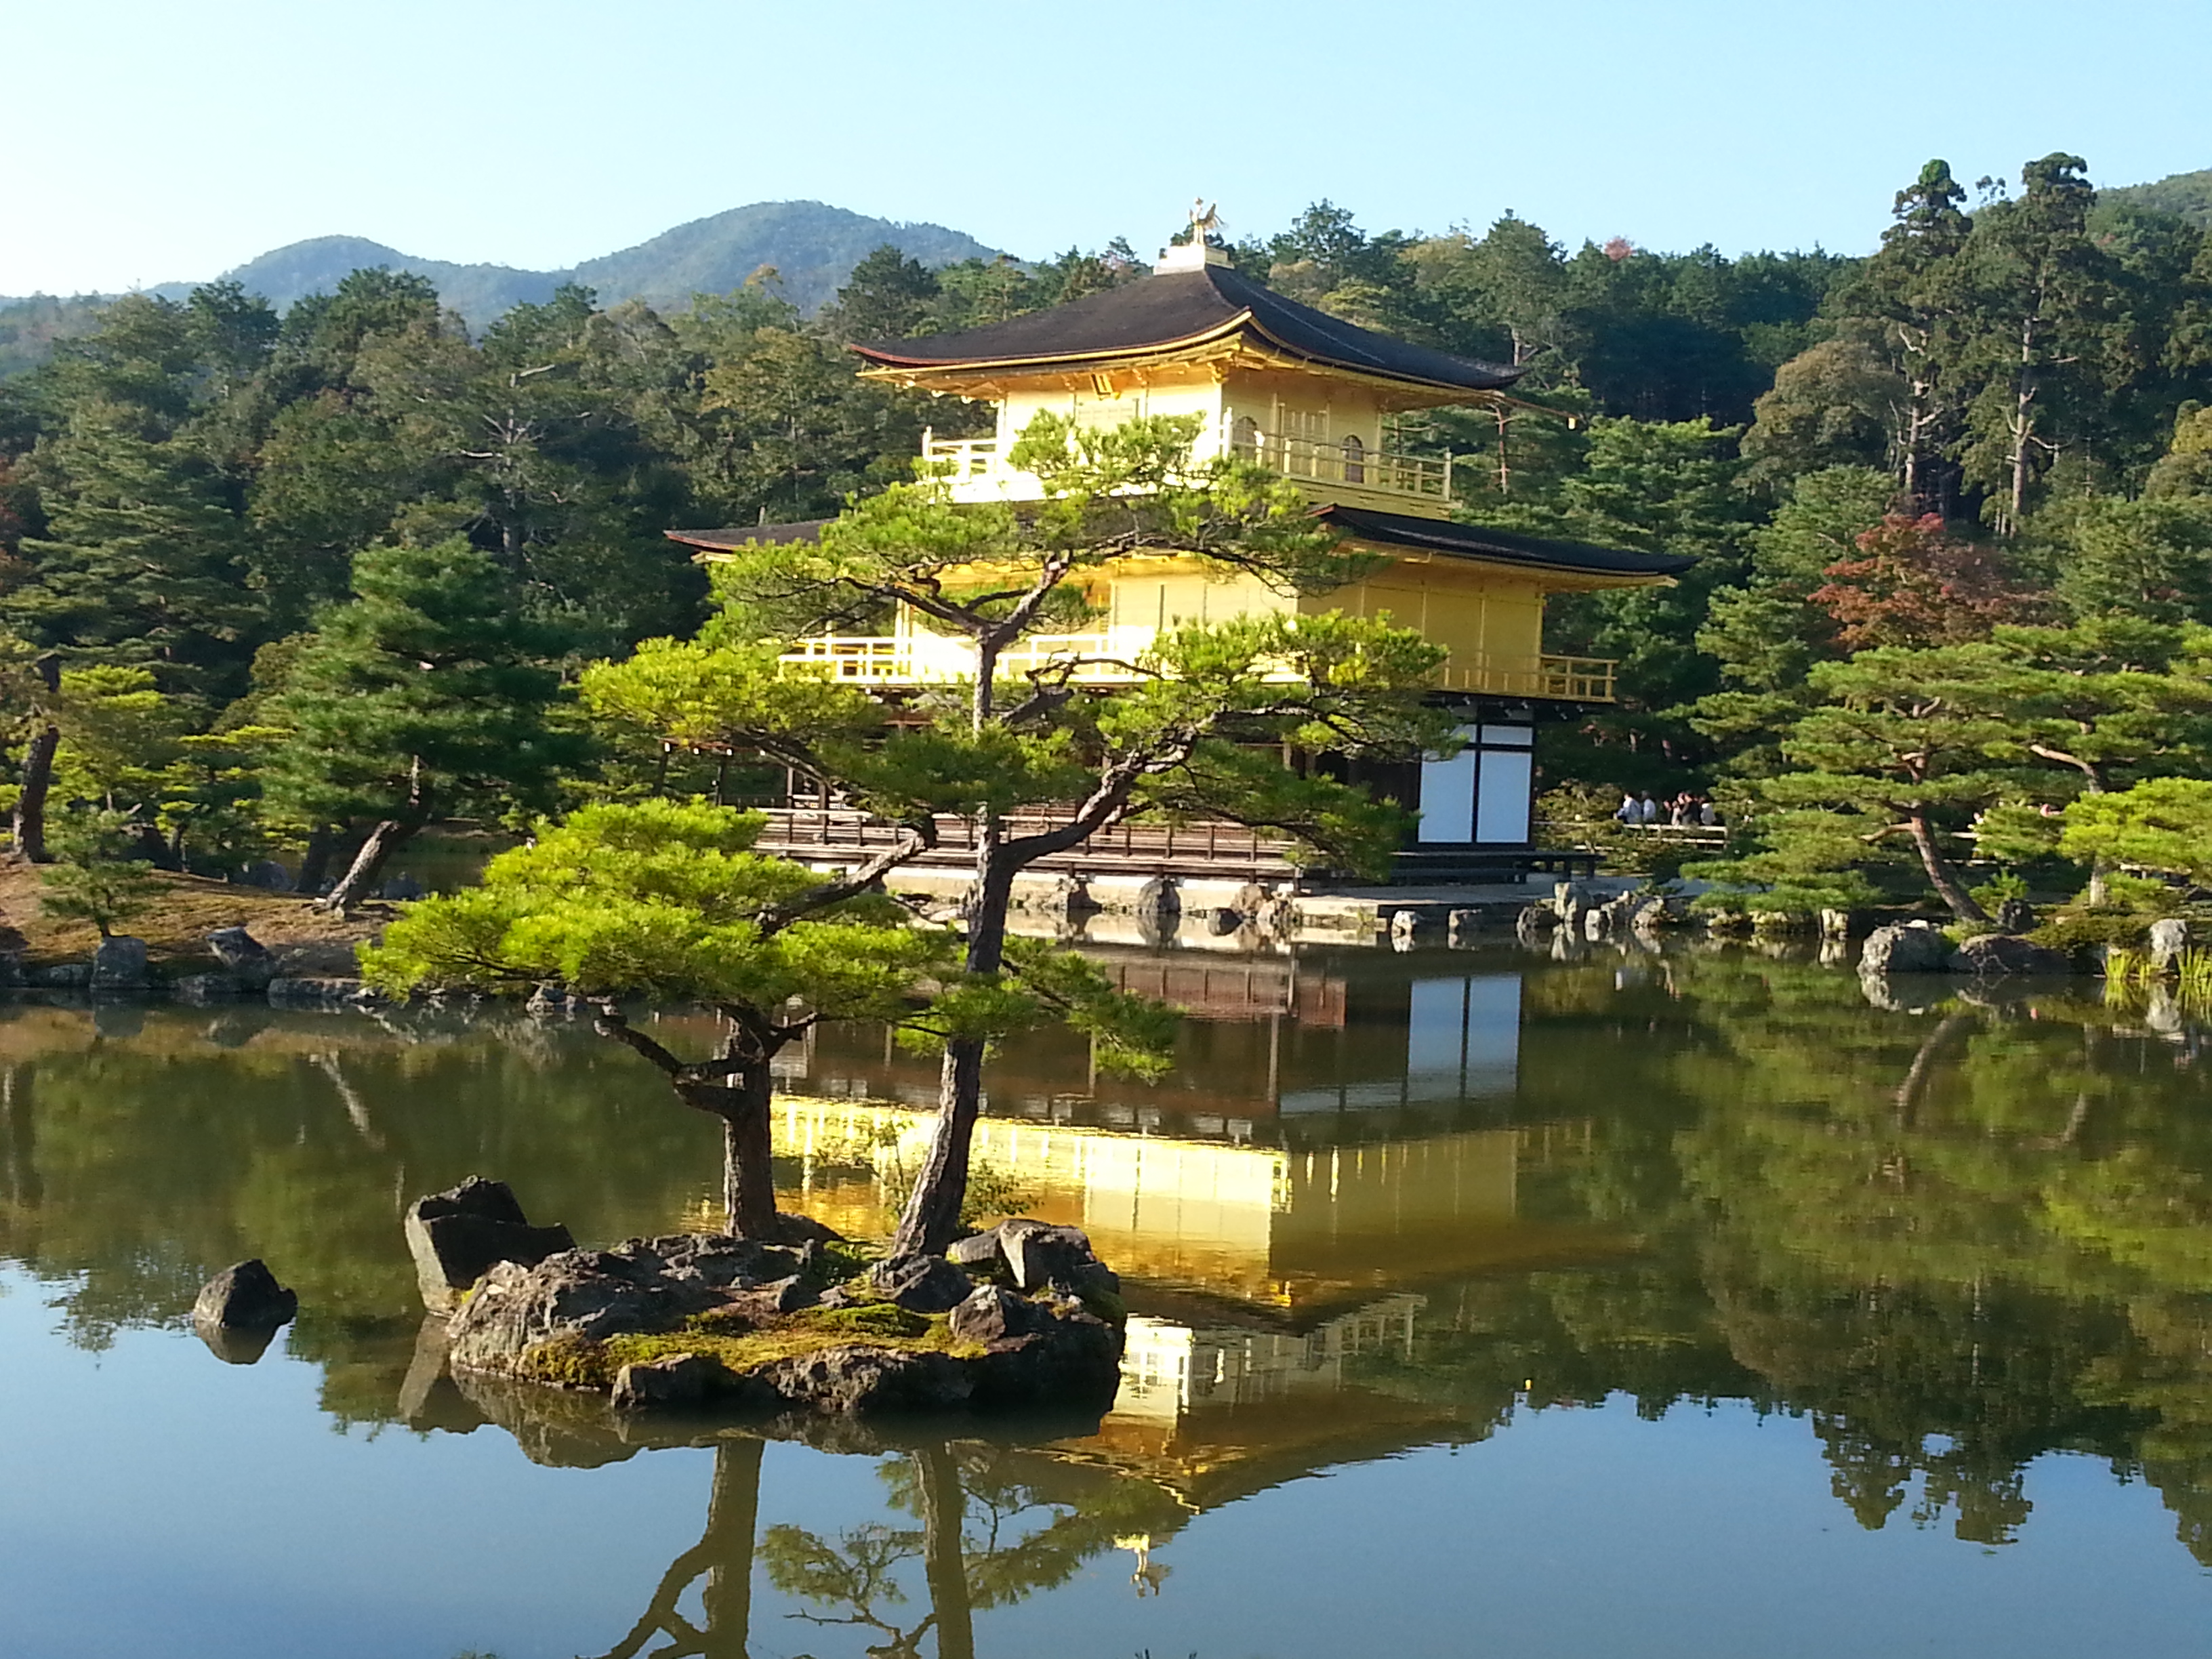 Golden Pavilion in Kyoto, Japan